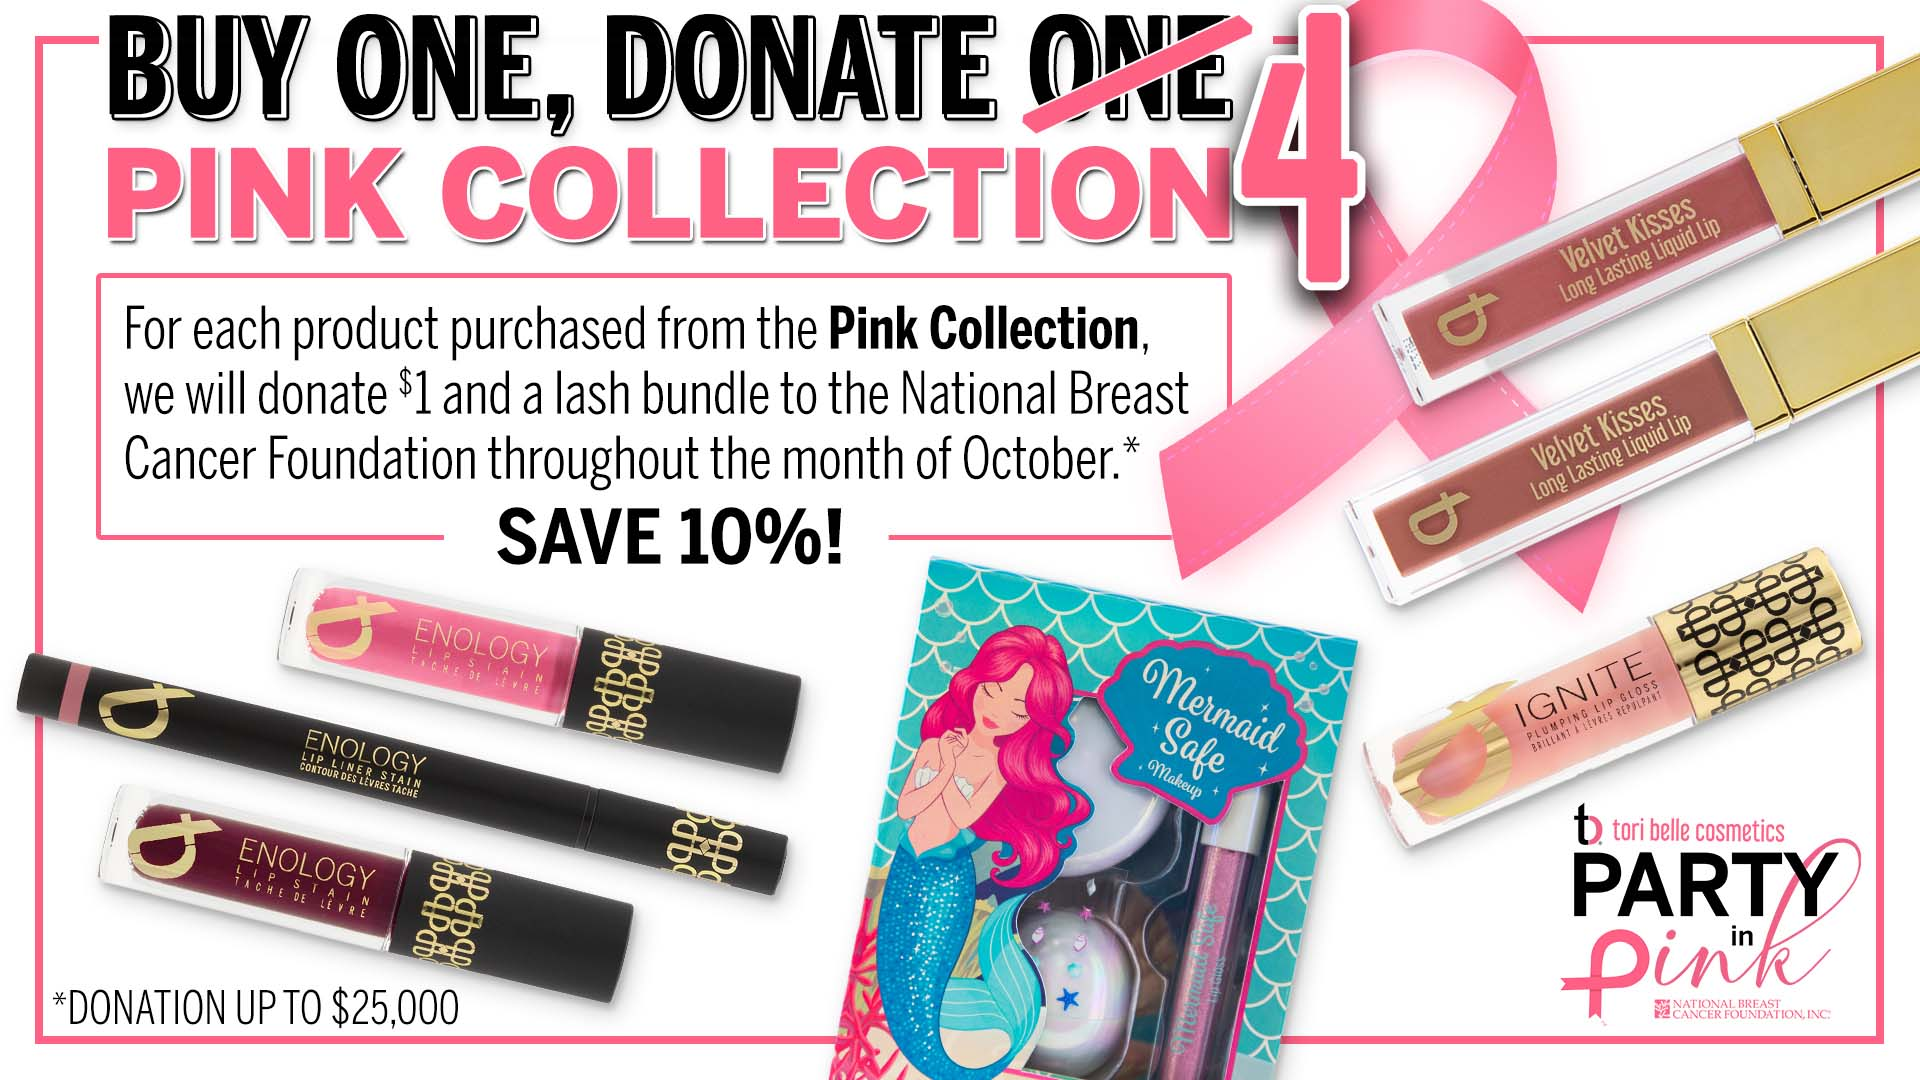 Pink Collection BODO